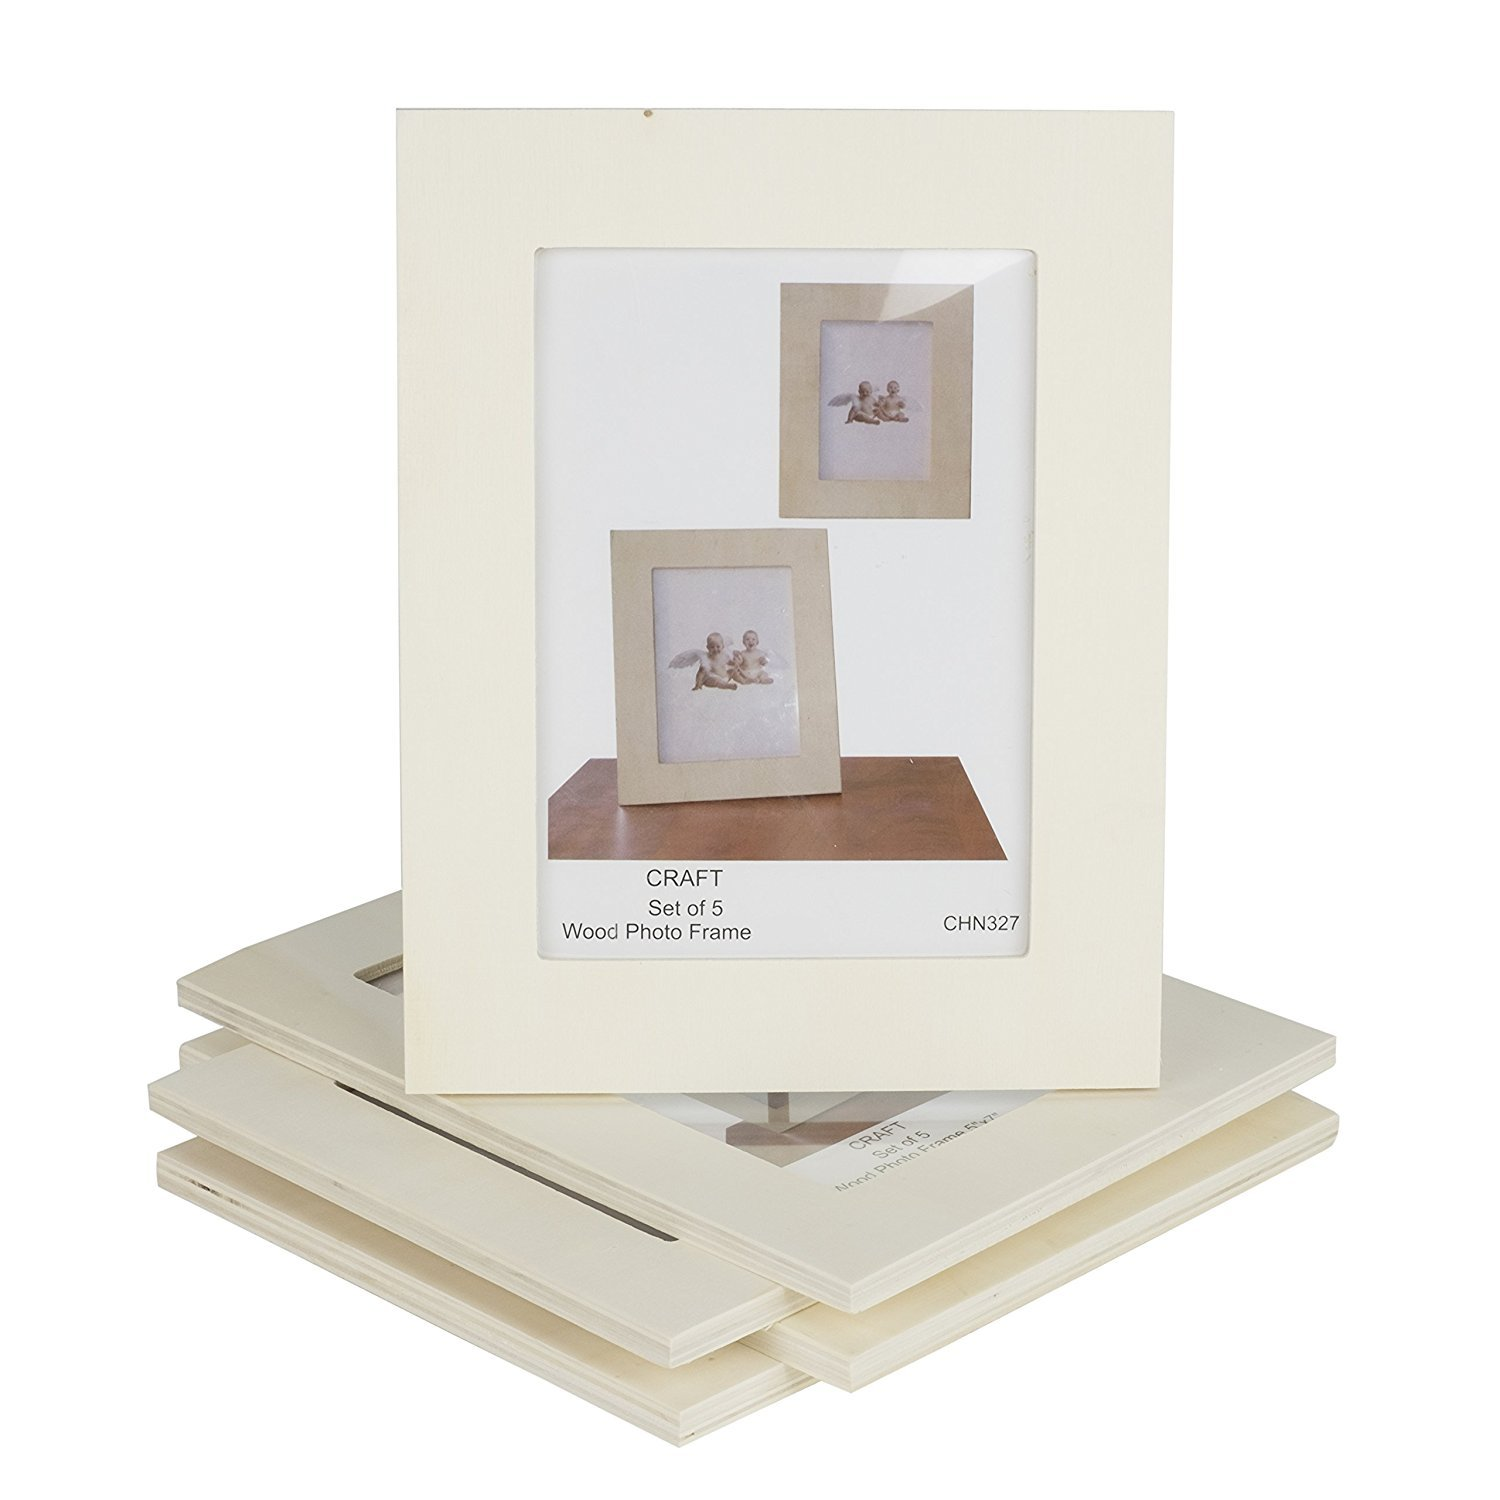 Best wooden picture frames for crafts | Amazon.com